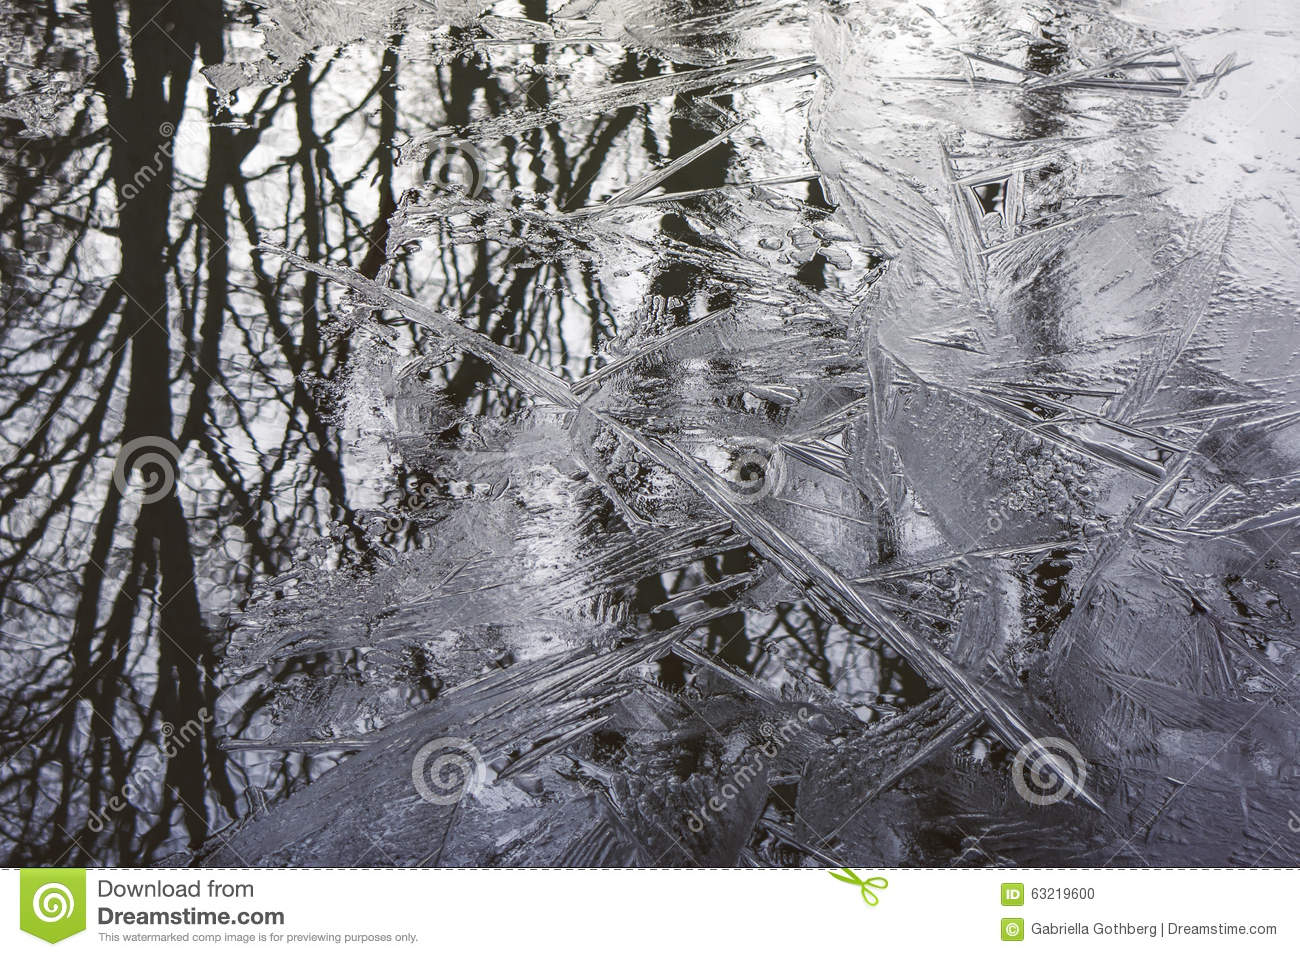 Details of trees reflected in ice and water.